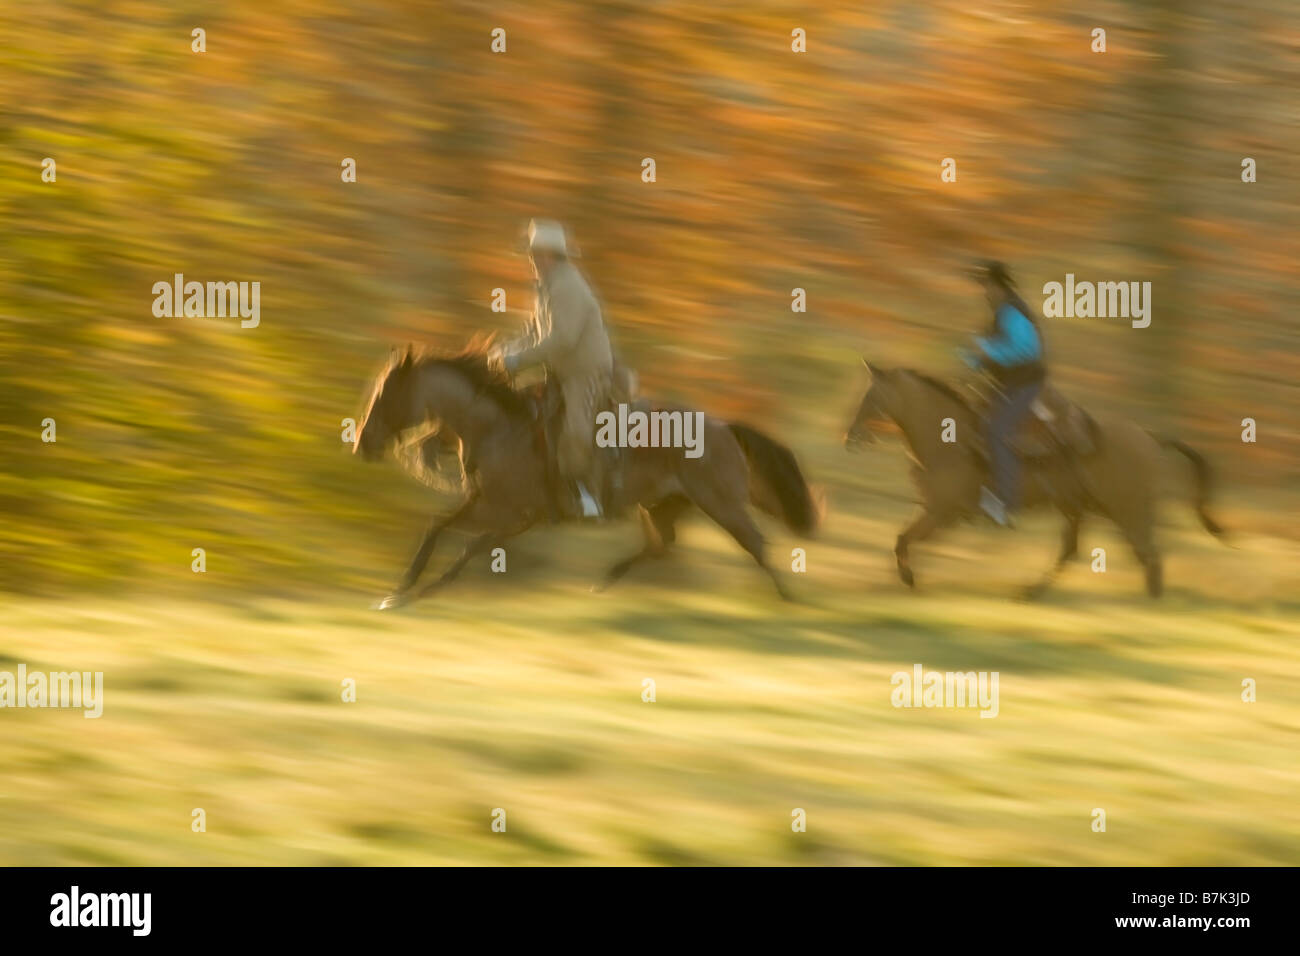 Two men on horseback galloping past forest in fall colors - Stock Image